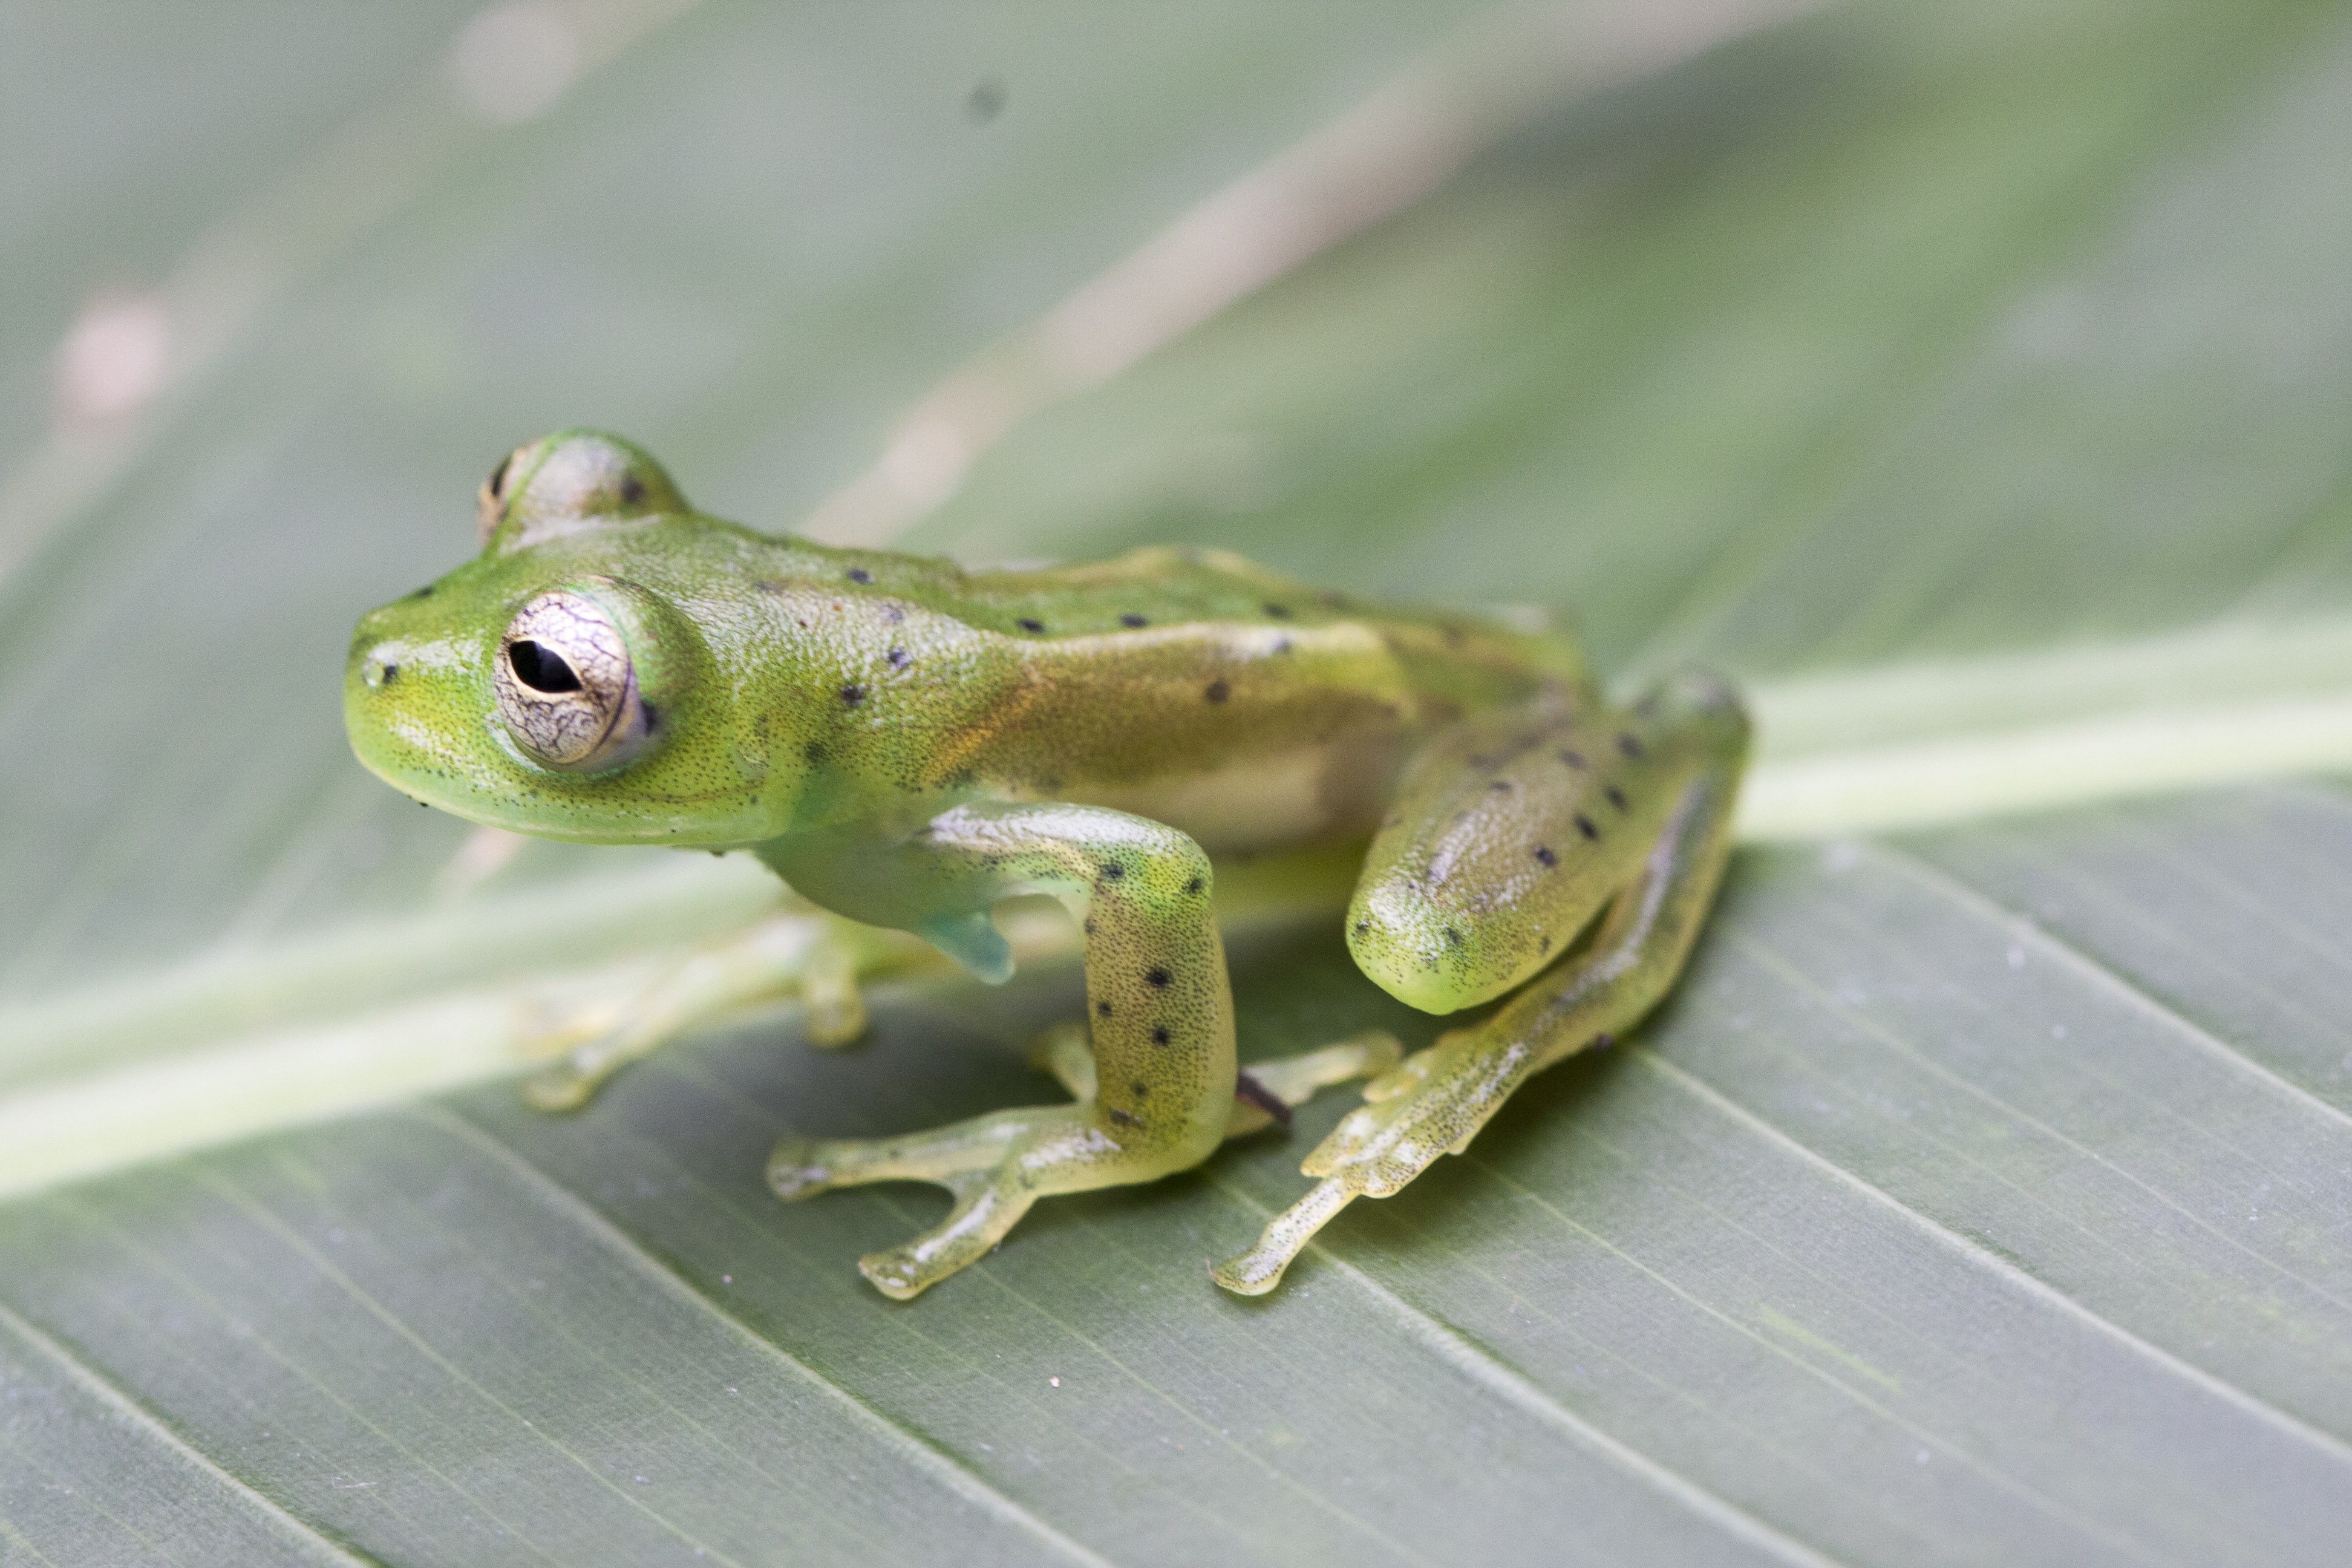 Bolivia's Rare 'Glass Frogs' Seen for the First Time in Almost Two Decades